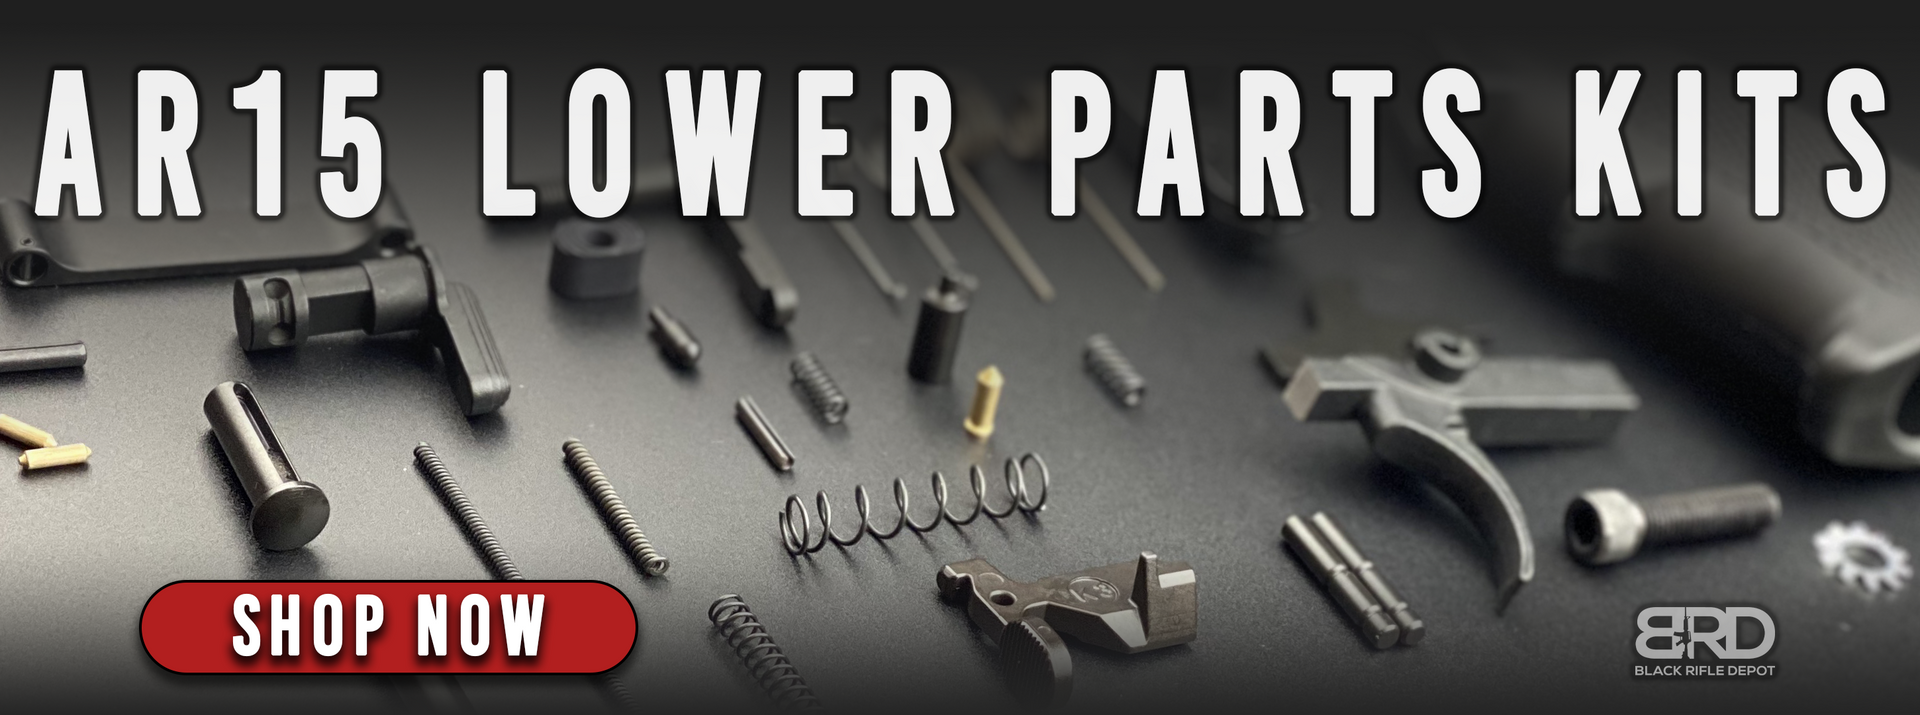 AR 15 Parts, AR Parts, AR15 Parts, LPK's, Lower Parts Kits, AR Lower Parts Kits, AR15 Lower Parts Kits, and AR 15 Lower Parts Kits at the very best prices.